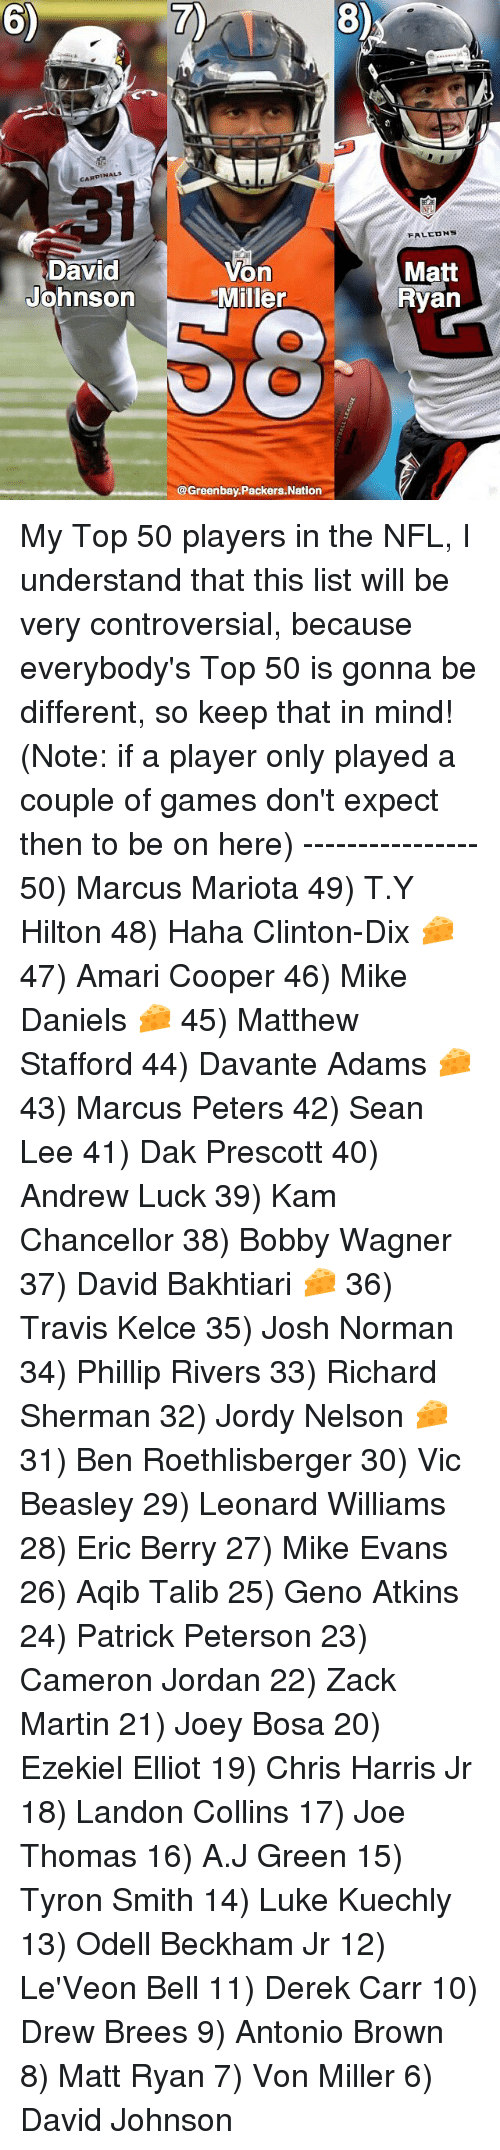 Andrew Luck, Ben Roethlisberger, and Josh Norman: 6)  7)  8)  CARDINALS  NFL  David  Johnson  Von  Miller  Matt  Ryan  @Greenbay.Packers.Natiorn My Top 50 players in the NFL, I understand that this list will be very controversial, because everybody's Top 50 is gonna be different, so keep that in mind! (Note: if a player only played a couple of games don't expect then to be on here) ---------------- 50) Marcus Mariota 49) T.Y Hilton 48) Haha Clinton-Dix 🧀 47) Amari Cooper 46) Mike Daniels 🧀 45) Matthew Stafford 44) Davante Adams 🧀 43) Marcus Peters 42) Sean Lee 41) Dak Prescott 40) Andrew Luck 39) Kam Chancellor 38) Bobby Wagner 37) David Bakhtiari 🧀 36) Travis Kelce 35) Josh Norman 34) Phillip Rivers 33) Richard Sherman 32) Jordy Nelson 🧀 31) Ben Roethlisberger 30) Vic Beasley 29) Leonard Williams 28) Eric Berry 27) Mike Evans 26) Aqib Talib 25) Geno Atkins 24) Patrick Peterson 23) Cameron Jordan 22) Zack Martin 21) Joey Bosa 20) Ezekiel Elliot 19) Chris Harris Jr 18) Landon Collins 17) Joe Thomas 16) A.J Green 15) Tyron Smith 14) Luke Kuechly 13) Odell Beckham Jr 12) Le'Veon Bell 11) Derek Carr 10) Drew Brees 9) Antonio Brown 8) Matt Ryan 7) Von Miller 6) David Johnson